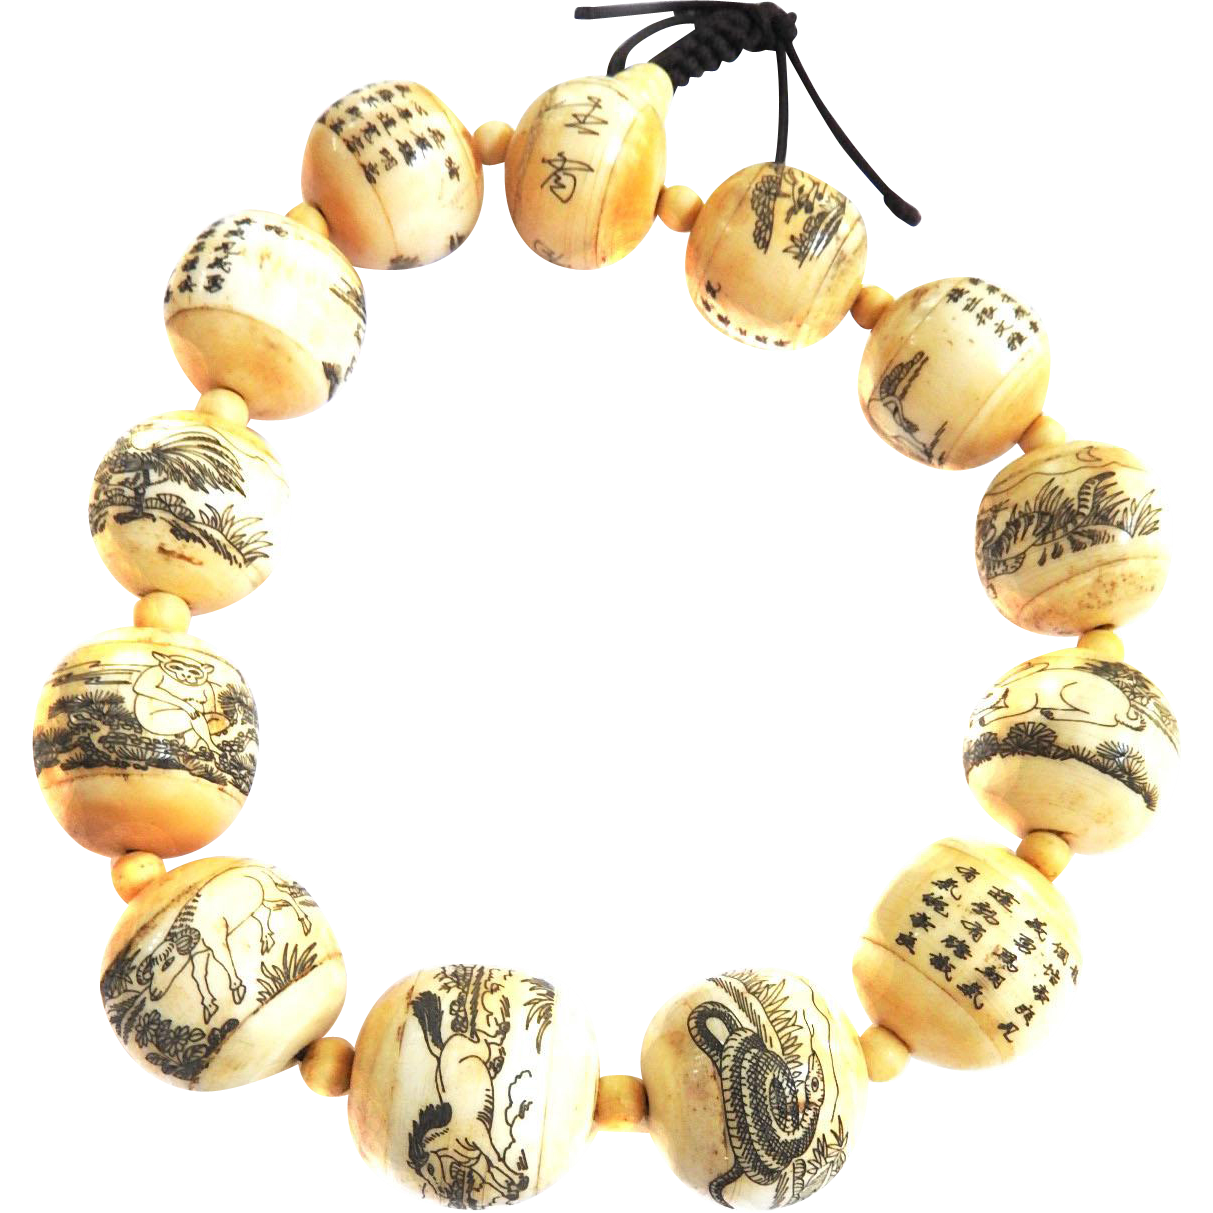 Gigantic Asian Inscribed Prayer Beads